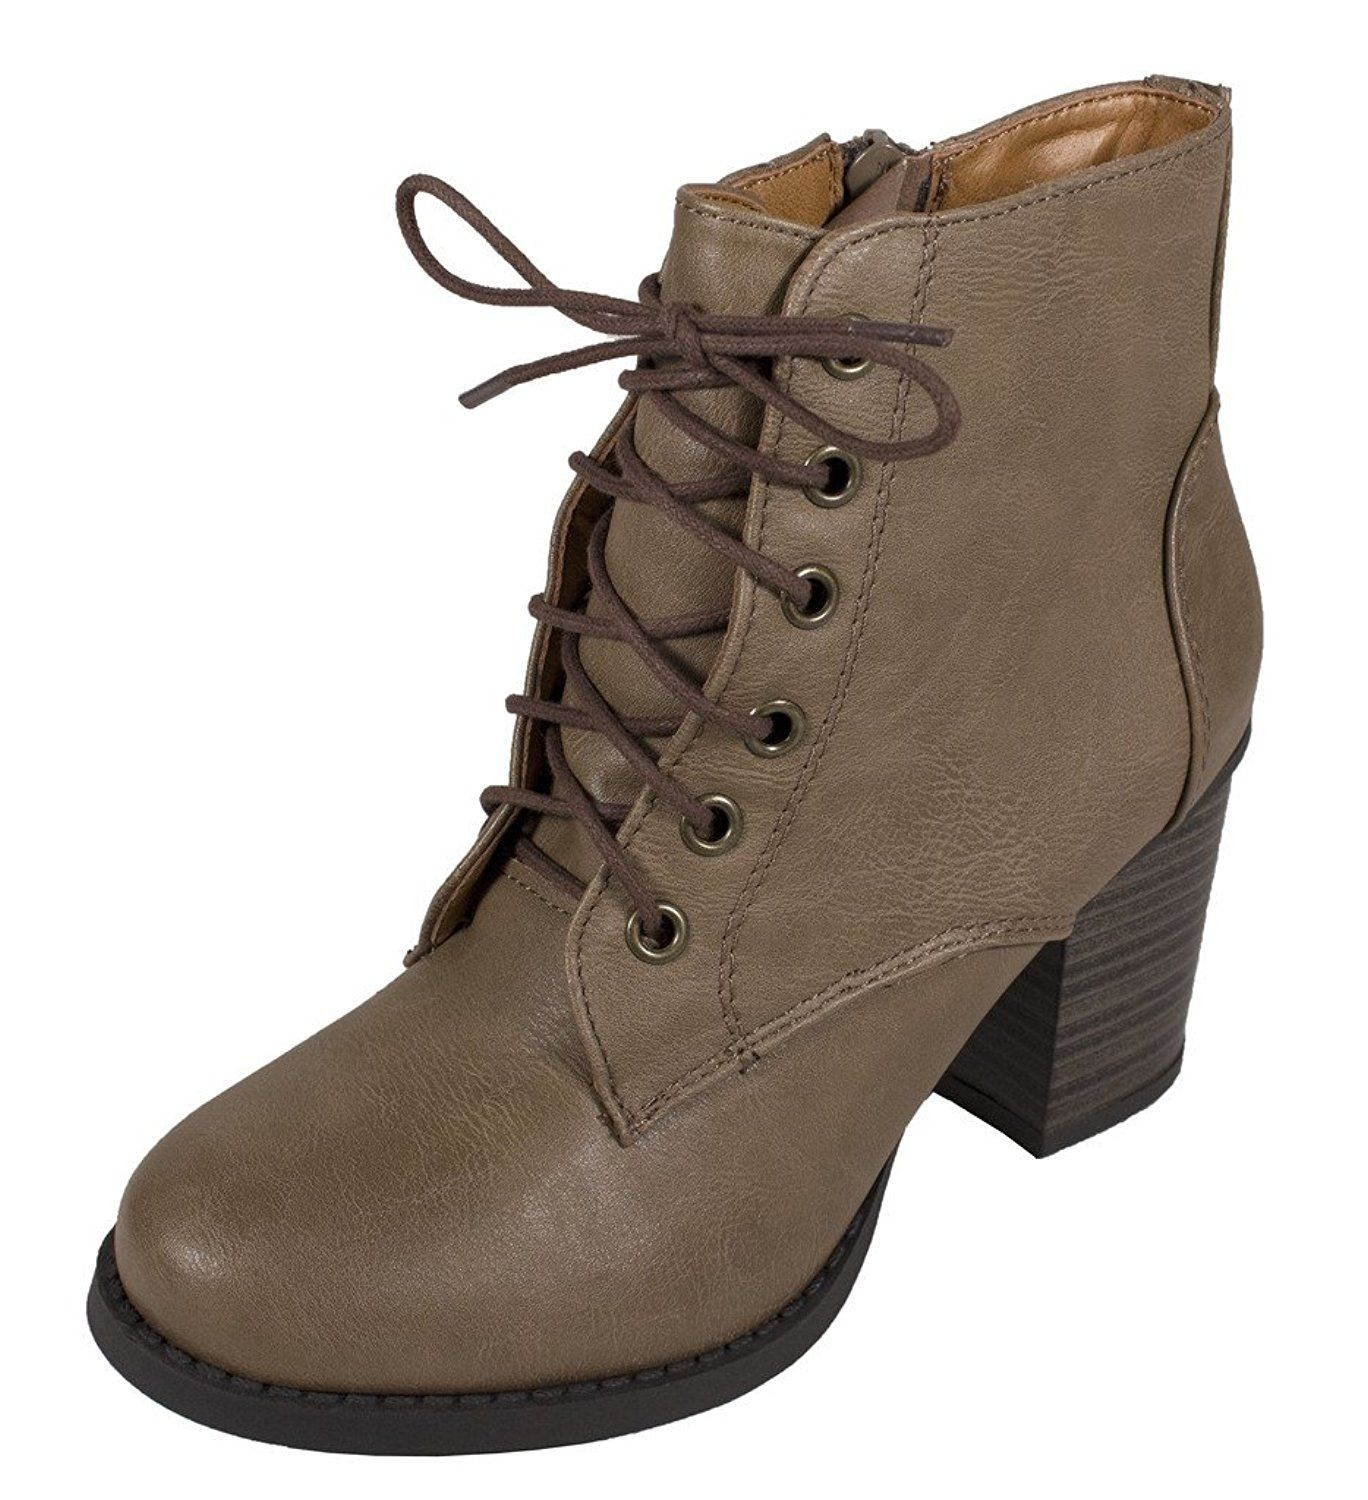 KORMAN! Women's Cute Classic Lace Up Chunky Heeled Ankle Bootie